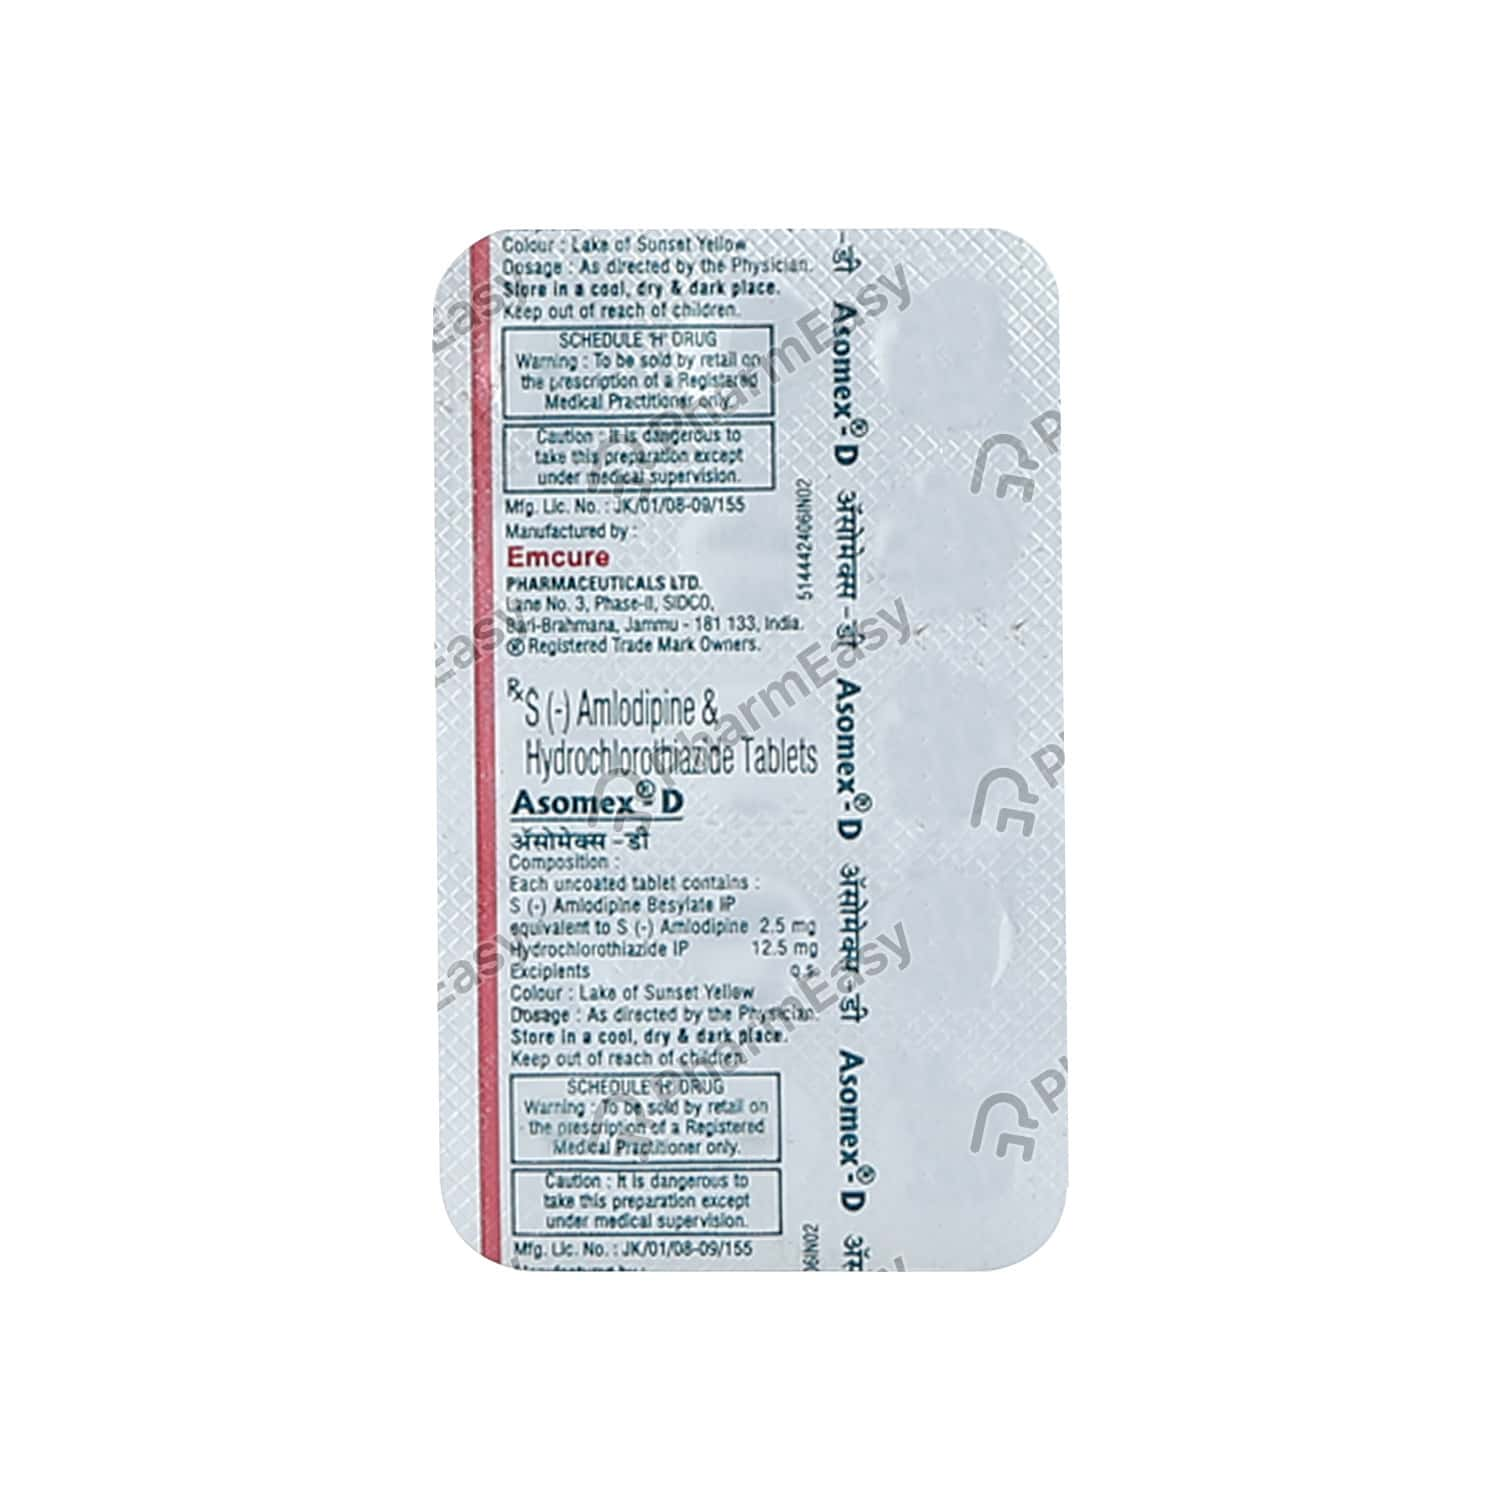 Asomex D 2.5mg Strip Of 15 Tablets